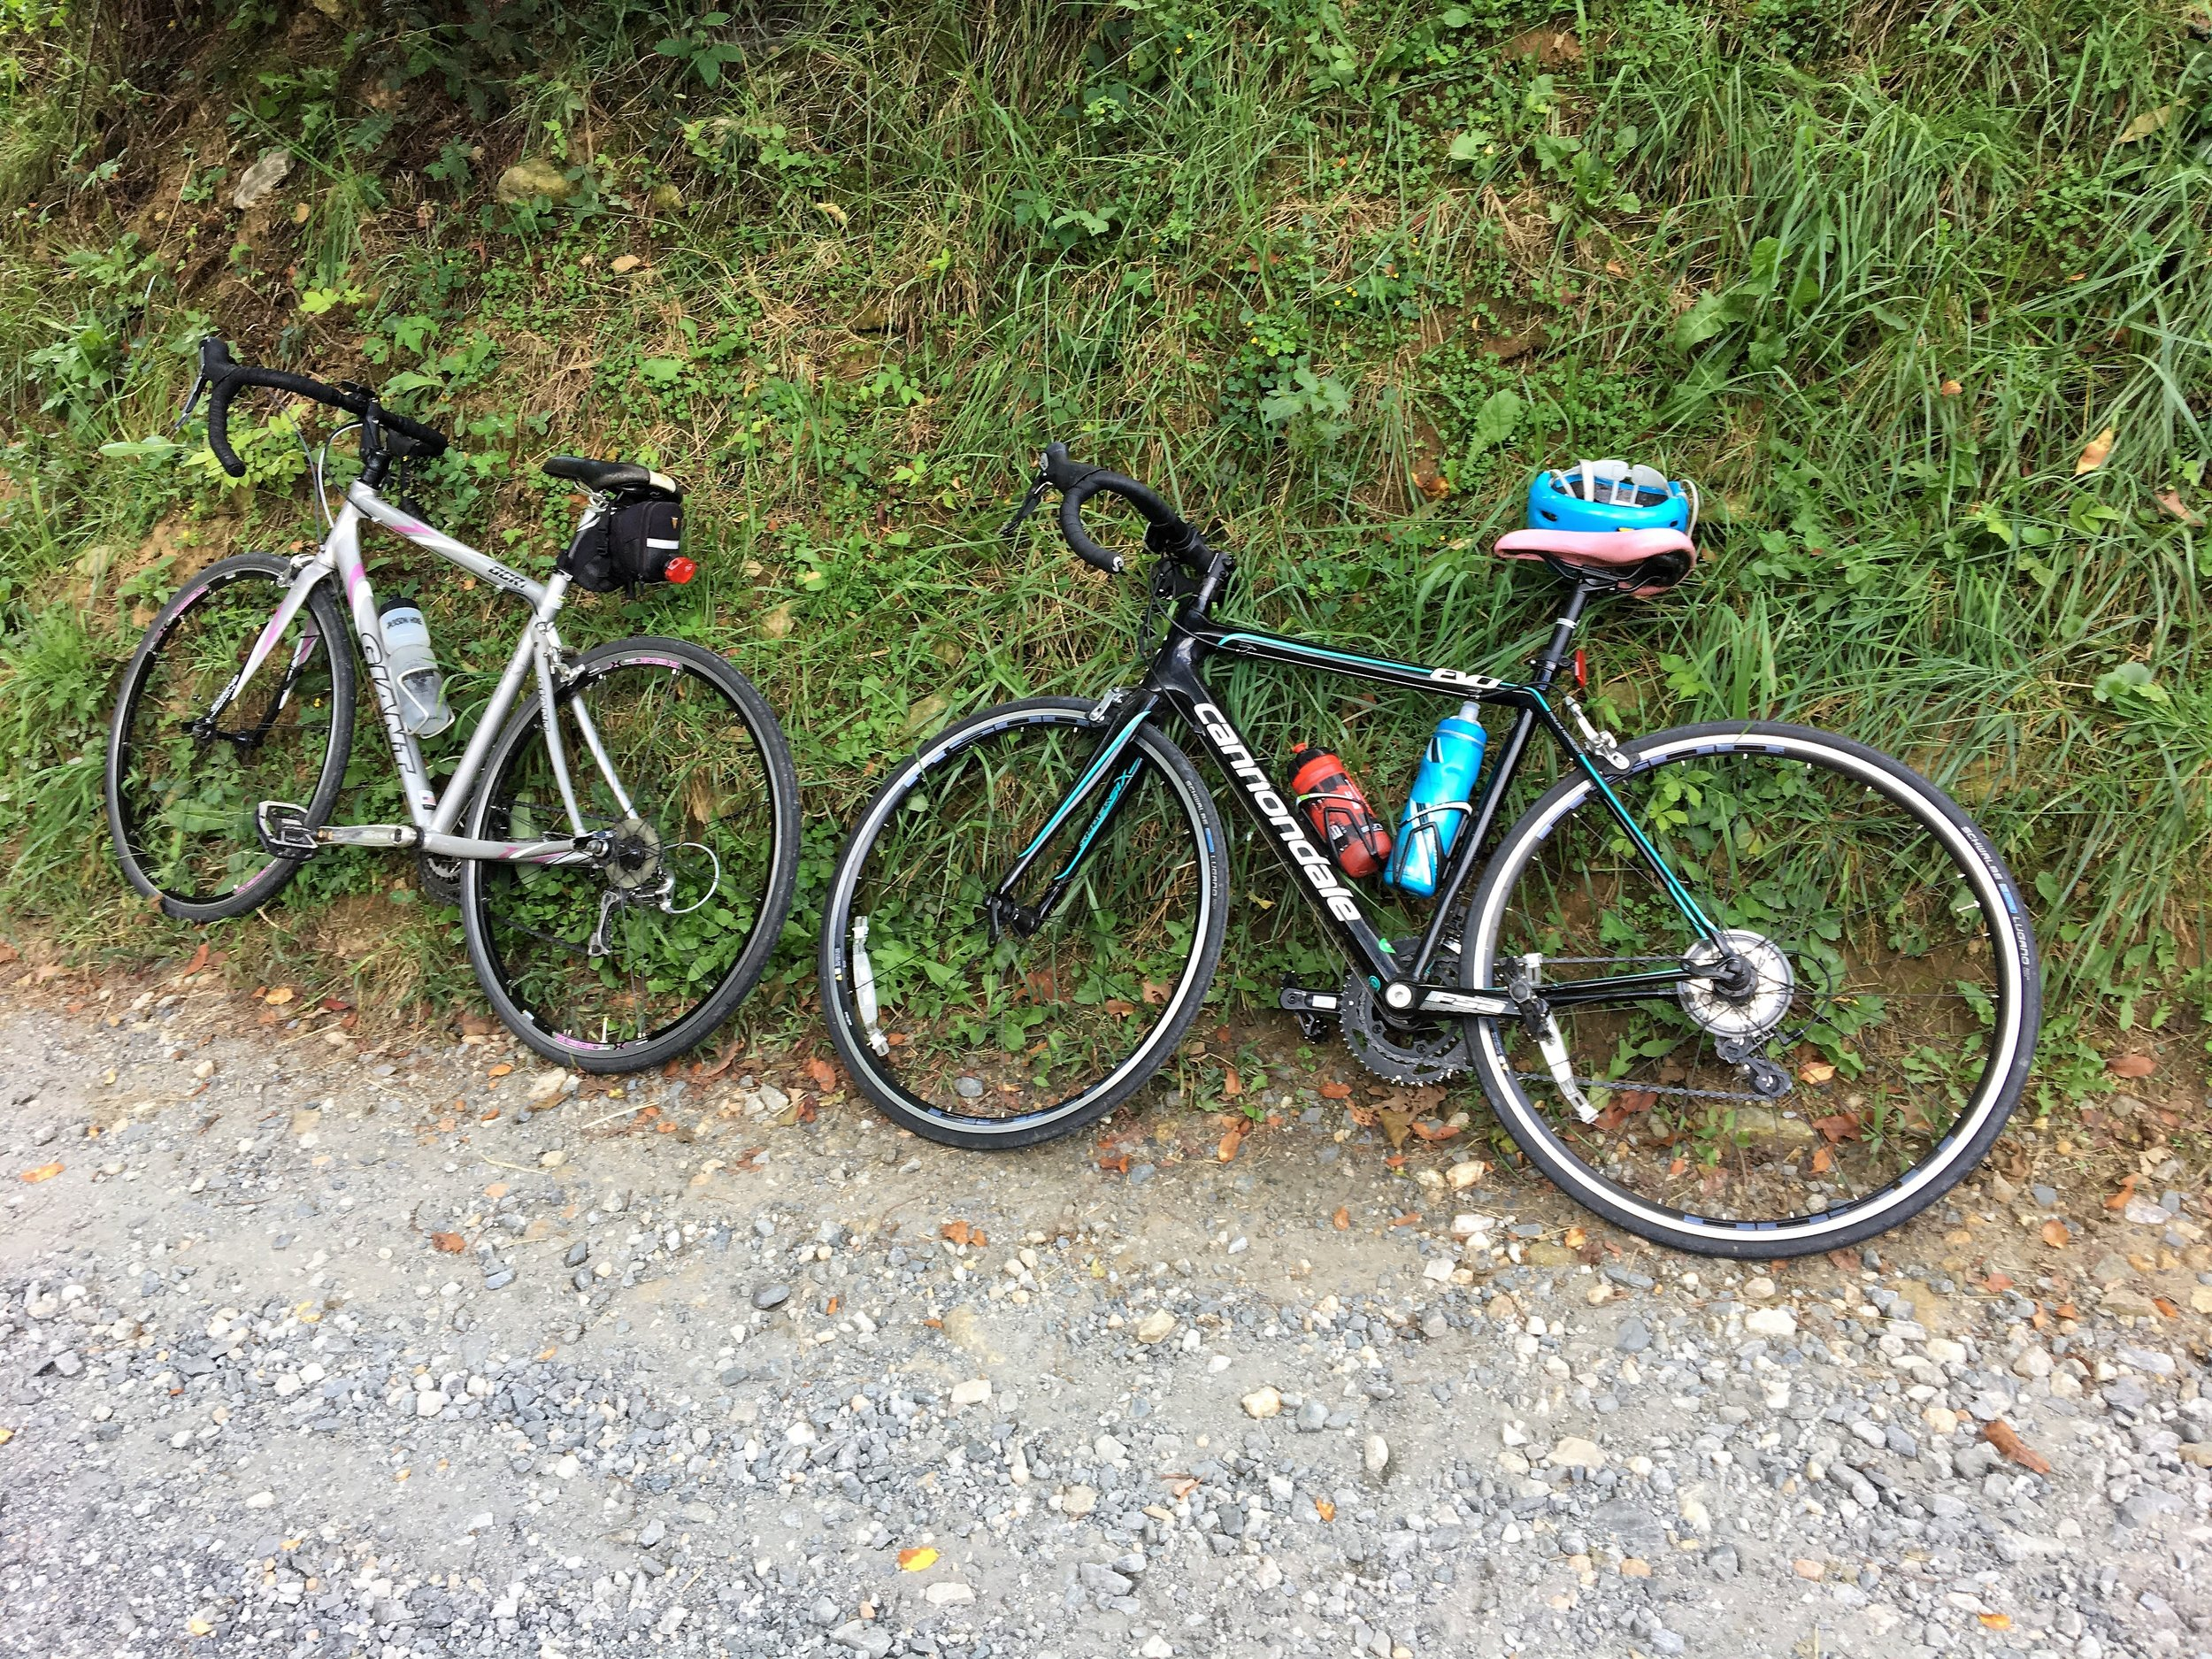 """- It takes just the right kind of person to enjoy spending an entire Sunday riding up and down steep mountain inclines with bicycle pedal power in order to see small farms in action. I guess I fall into that """"right person"""" category because I had a ridiculously good time at Pedal to Plate in Madison County."""